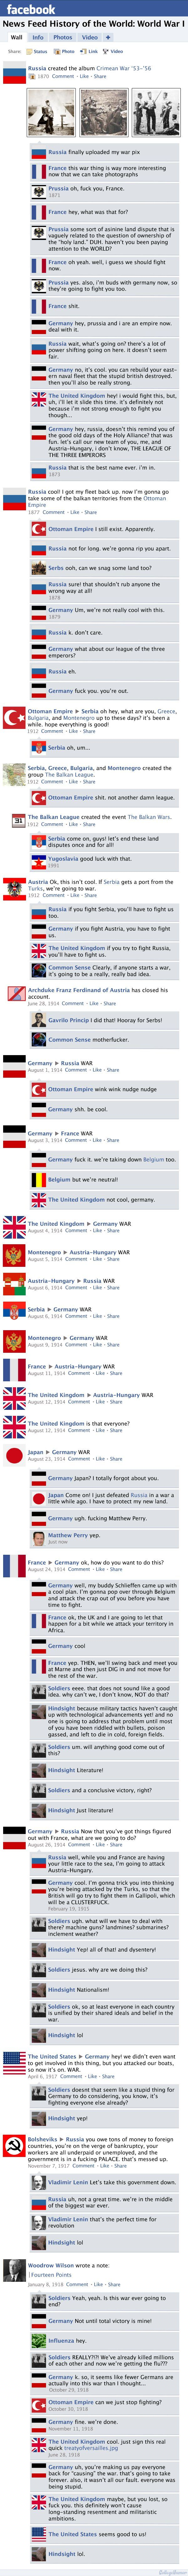 """Facebook News Feed History of the World: World War I to World War II"" by Susanna Wolff - CollegeHumor Article - Part 1"